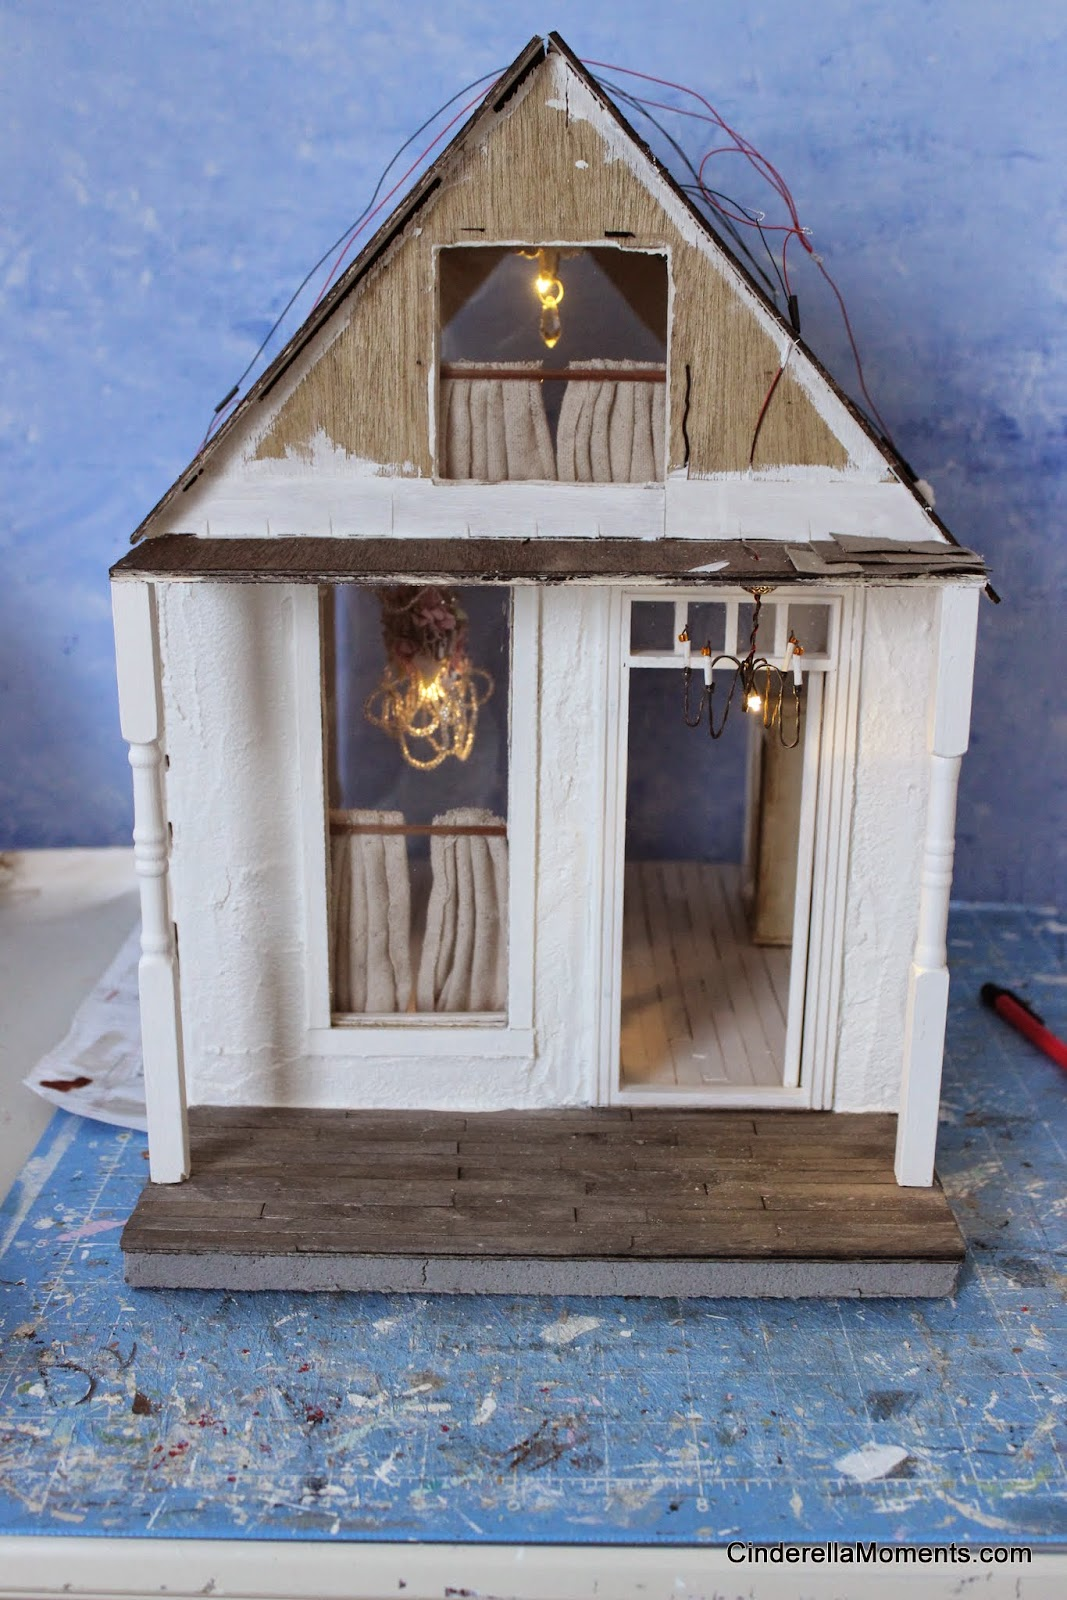 cinderella moments quintessential cottage dollhouse i m making a new cottage dollhouse called quintessential cottage